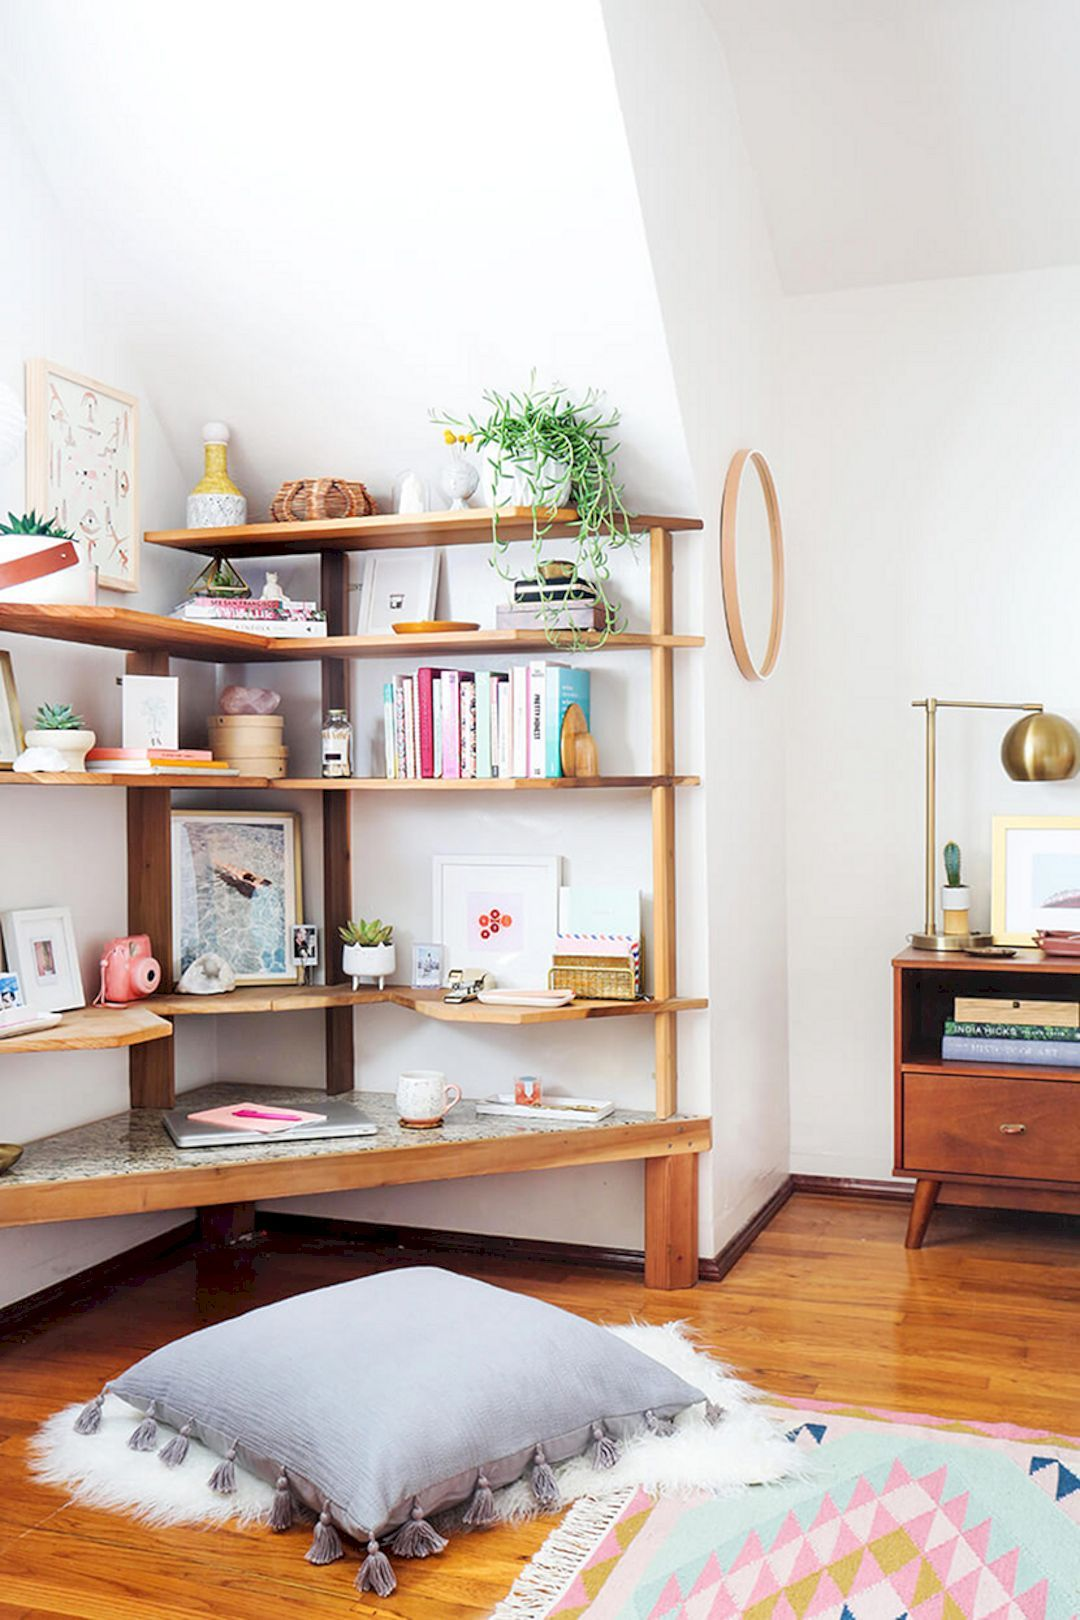 contemporary furniture small spaces. Cool Corner - A Maximalist\u0027s Survival Guide To Small Space Living Photos (Cool Furniture Spaces) Contemporary Spaces